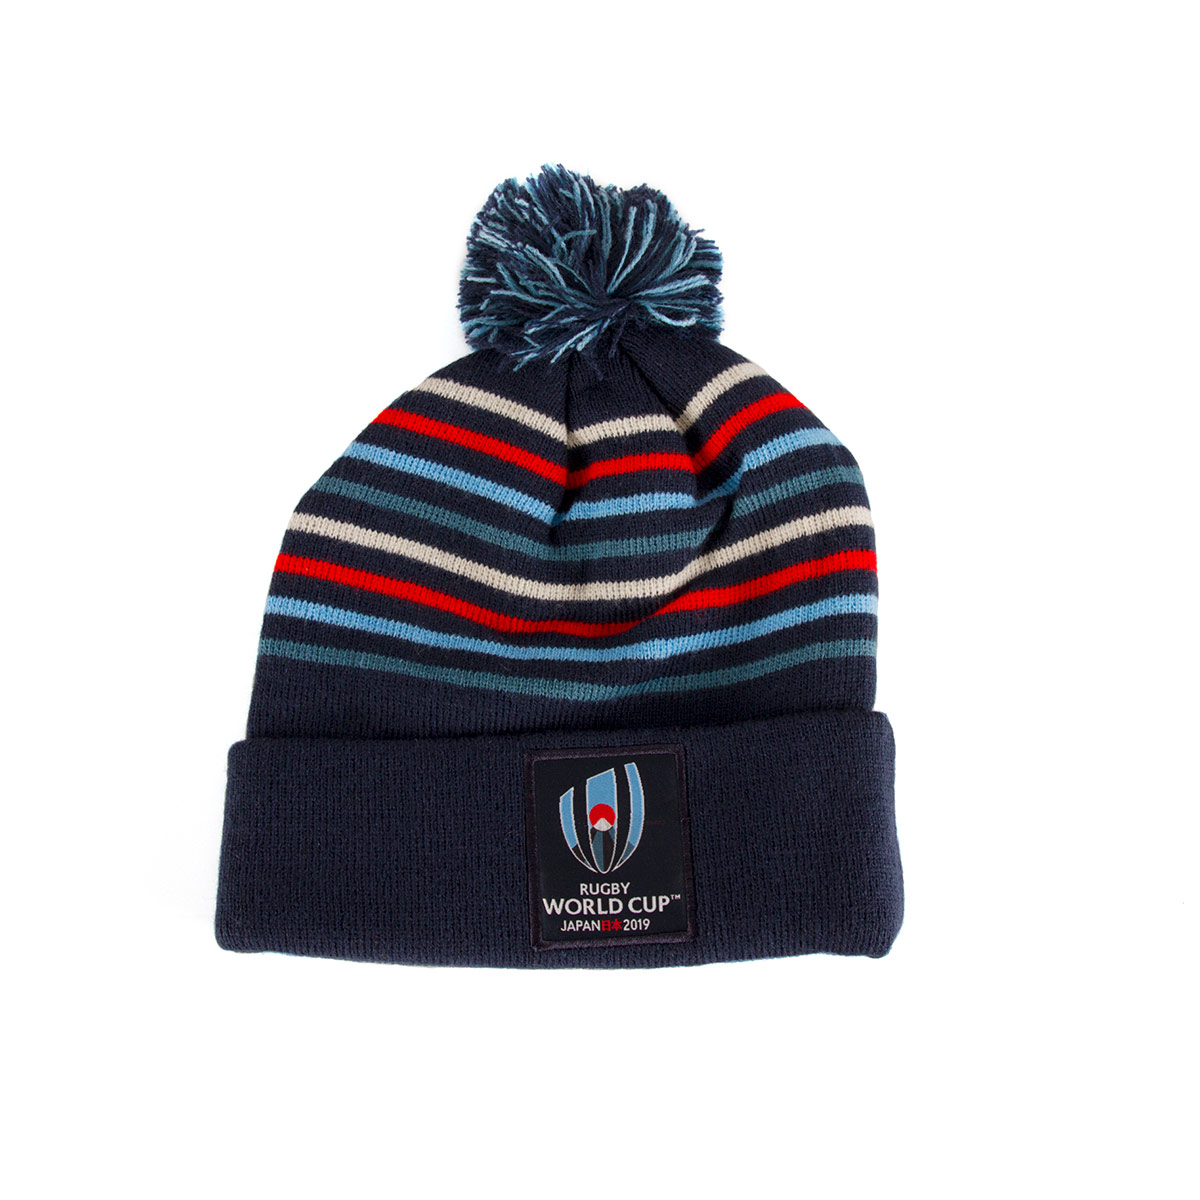 74935549e37 Canterbury Rugby World Cup 2019 Acrylic Bobble Hat Navy Blazer - Front